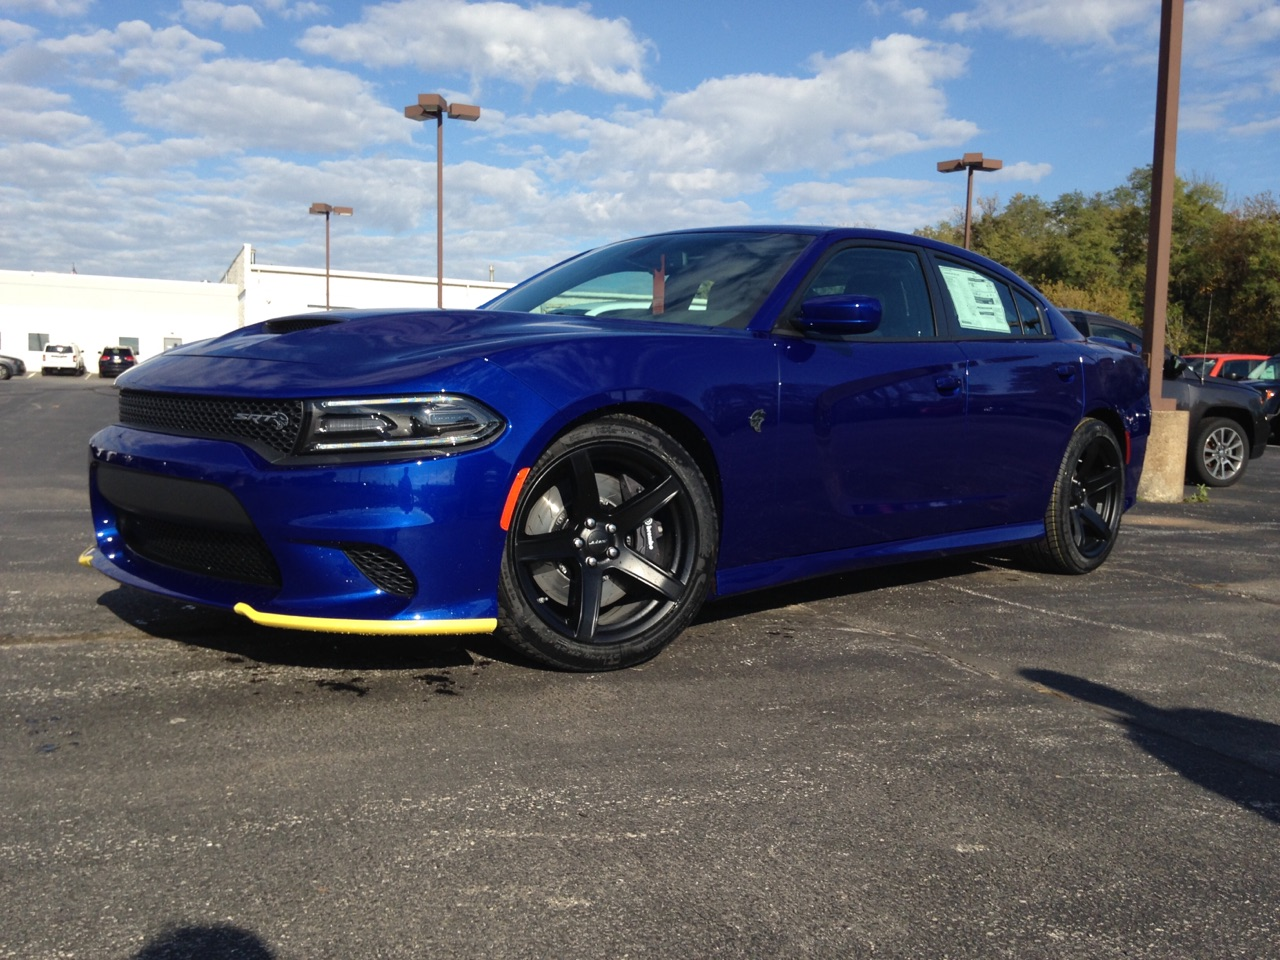 Indigo Blue Srt Hellcat Forum